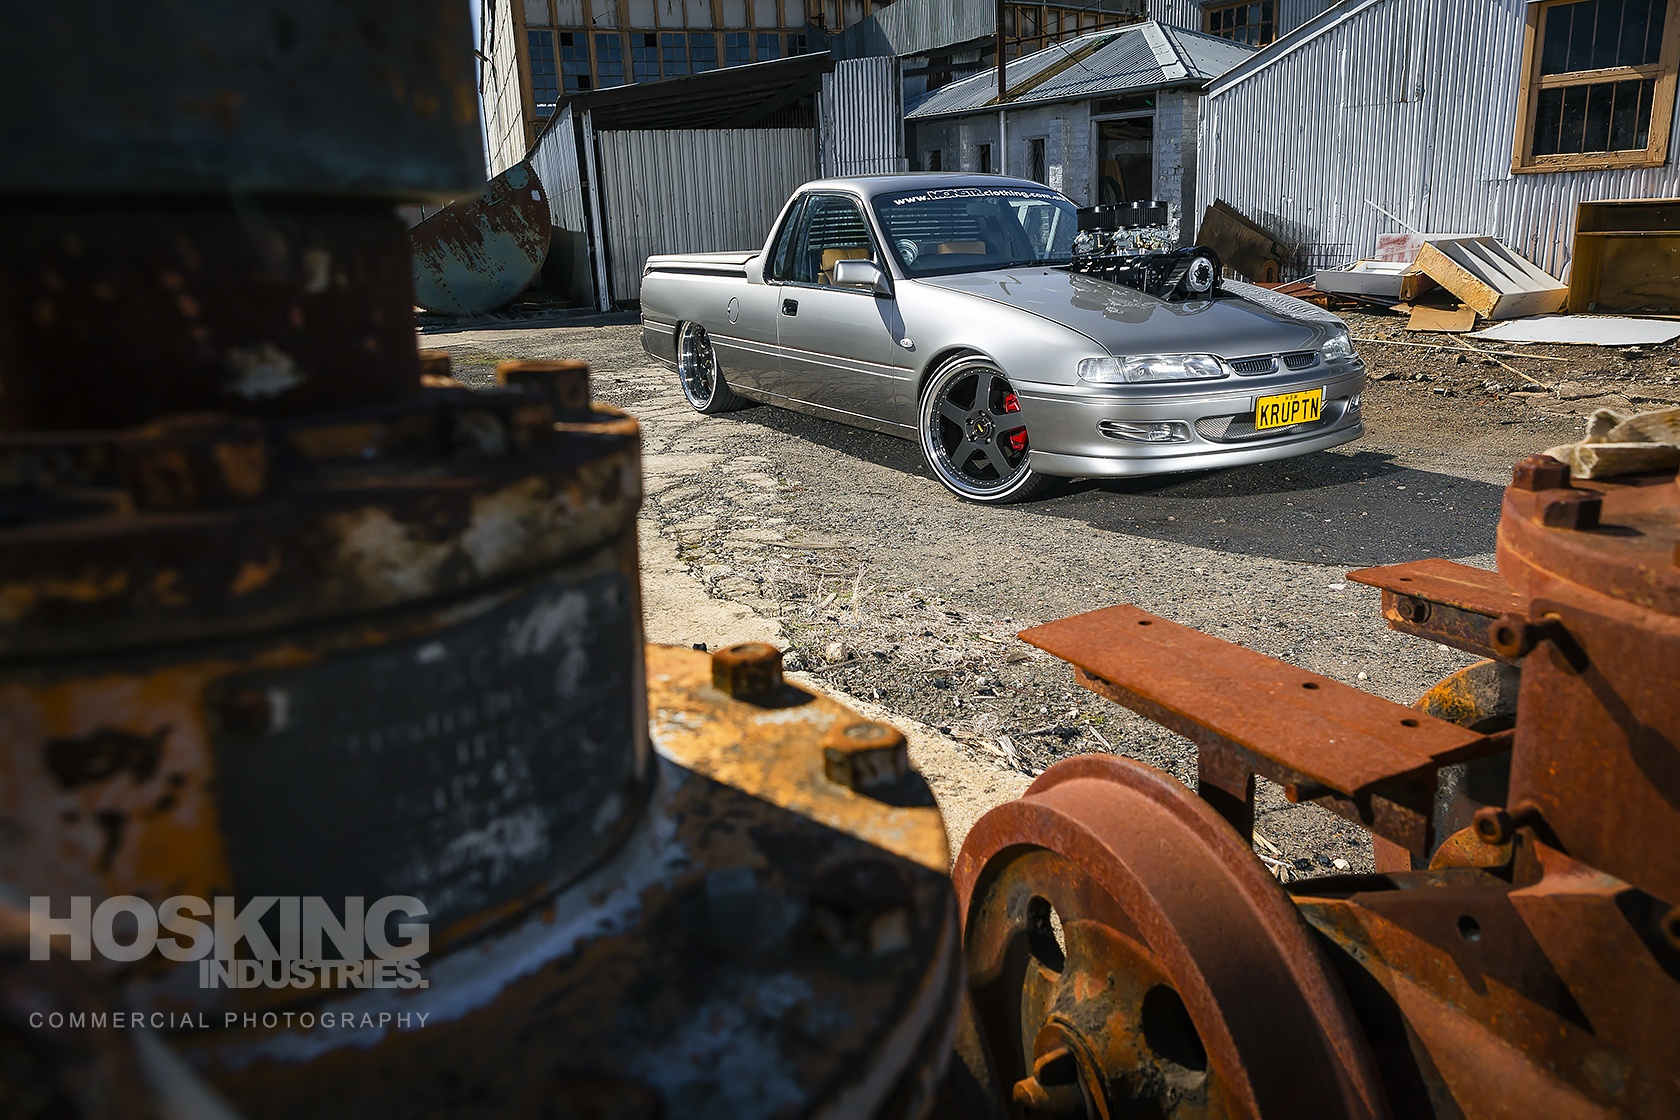 Clint Stevens' supercharged VS Commodore ute